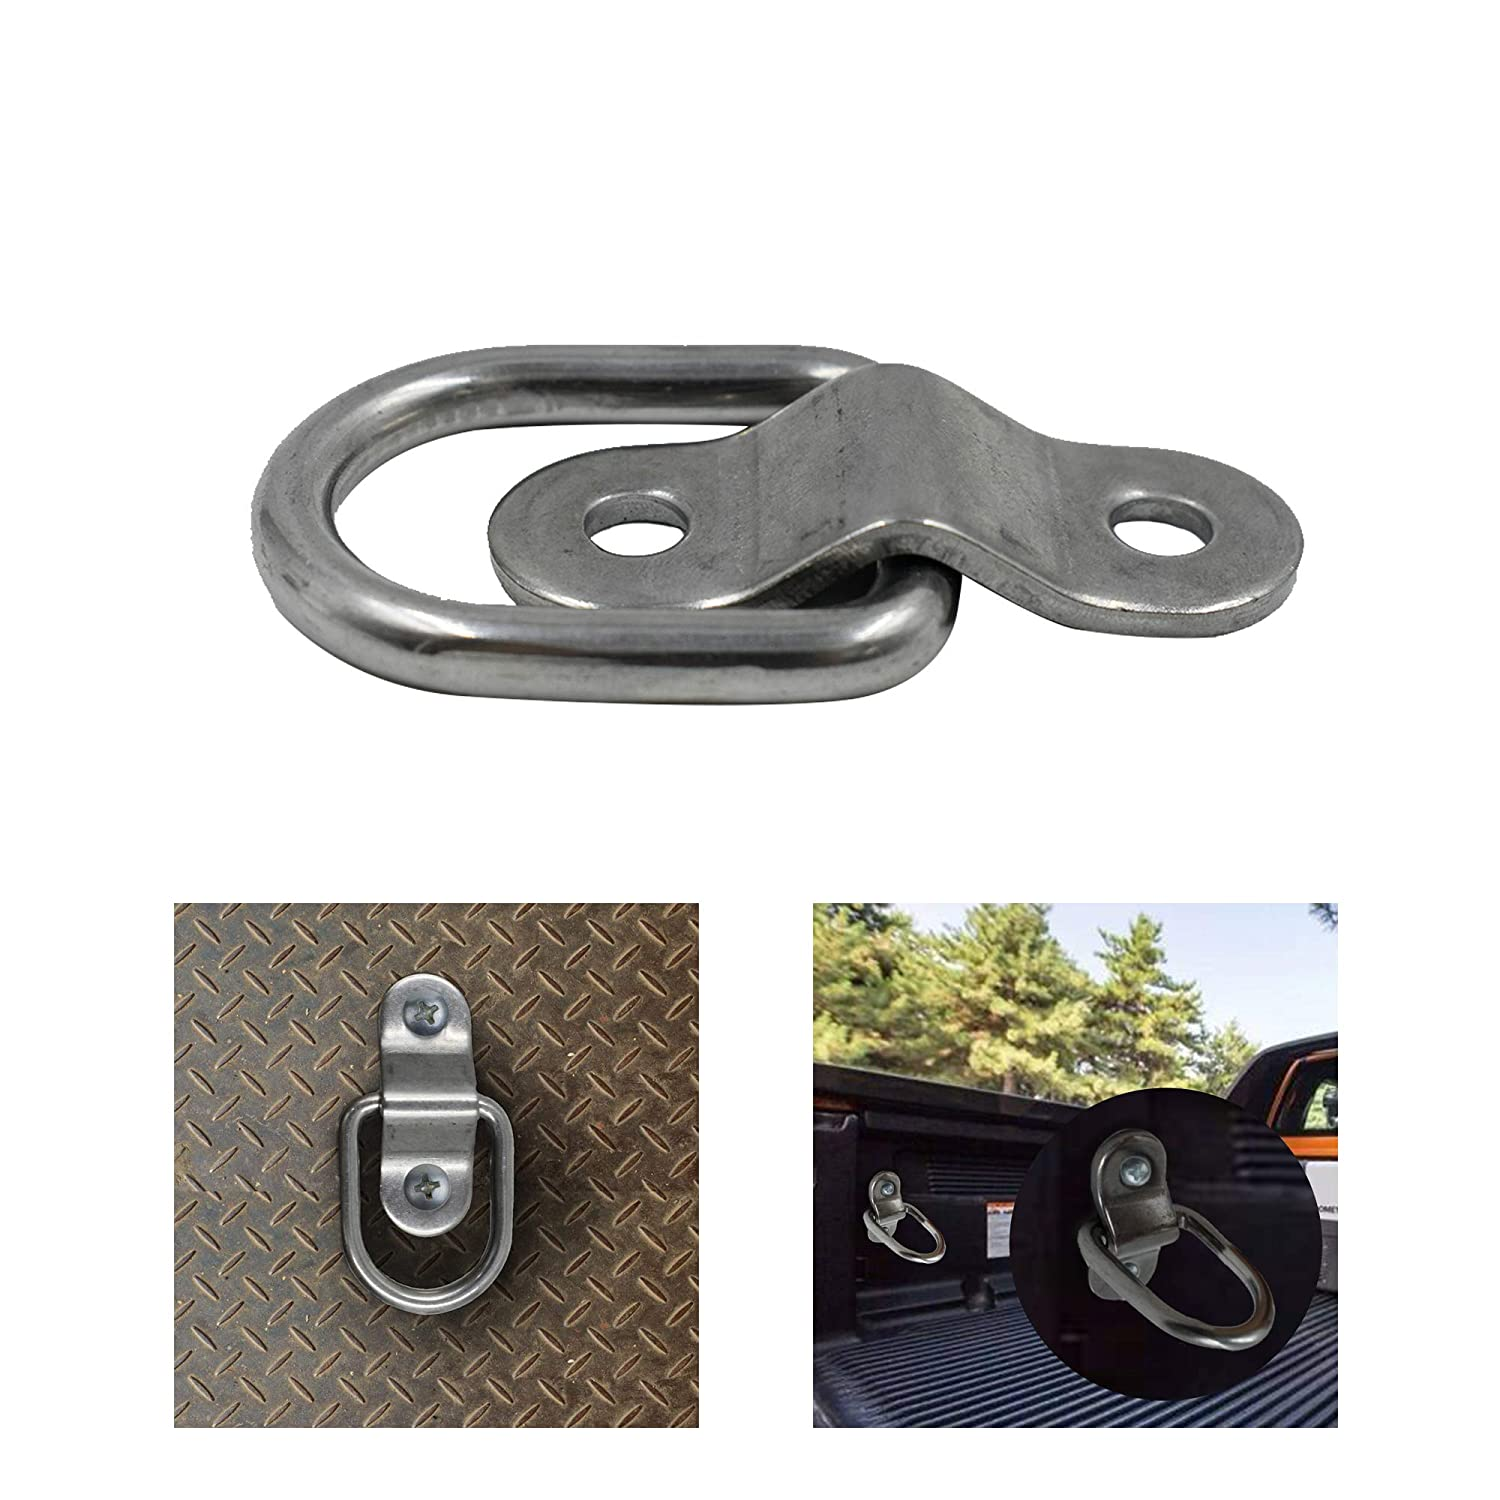 Alovexiong 2 Pack D Ring Tie Down Ring Lashing Rings Load Anchor Trailer Anchor Forged Lashing Ring Surface Floor Mount Ring Capacity Safe Secure Hauling for Trailers Trucks RV Campers SUV Boats